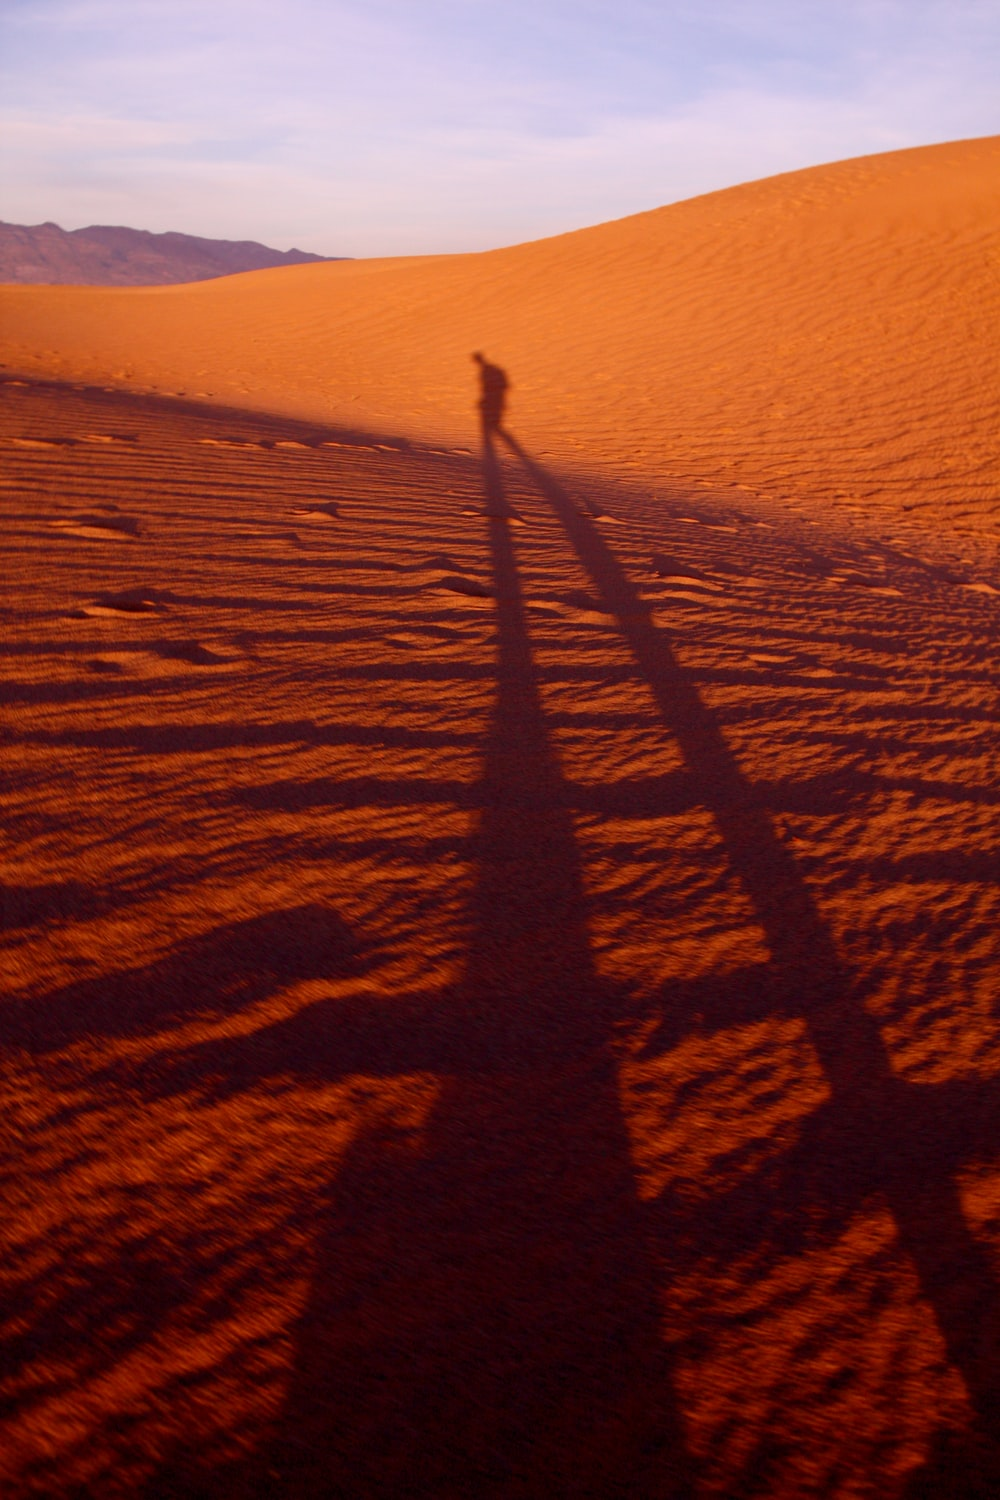 shadow of a person walking on desert